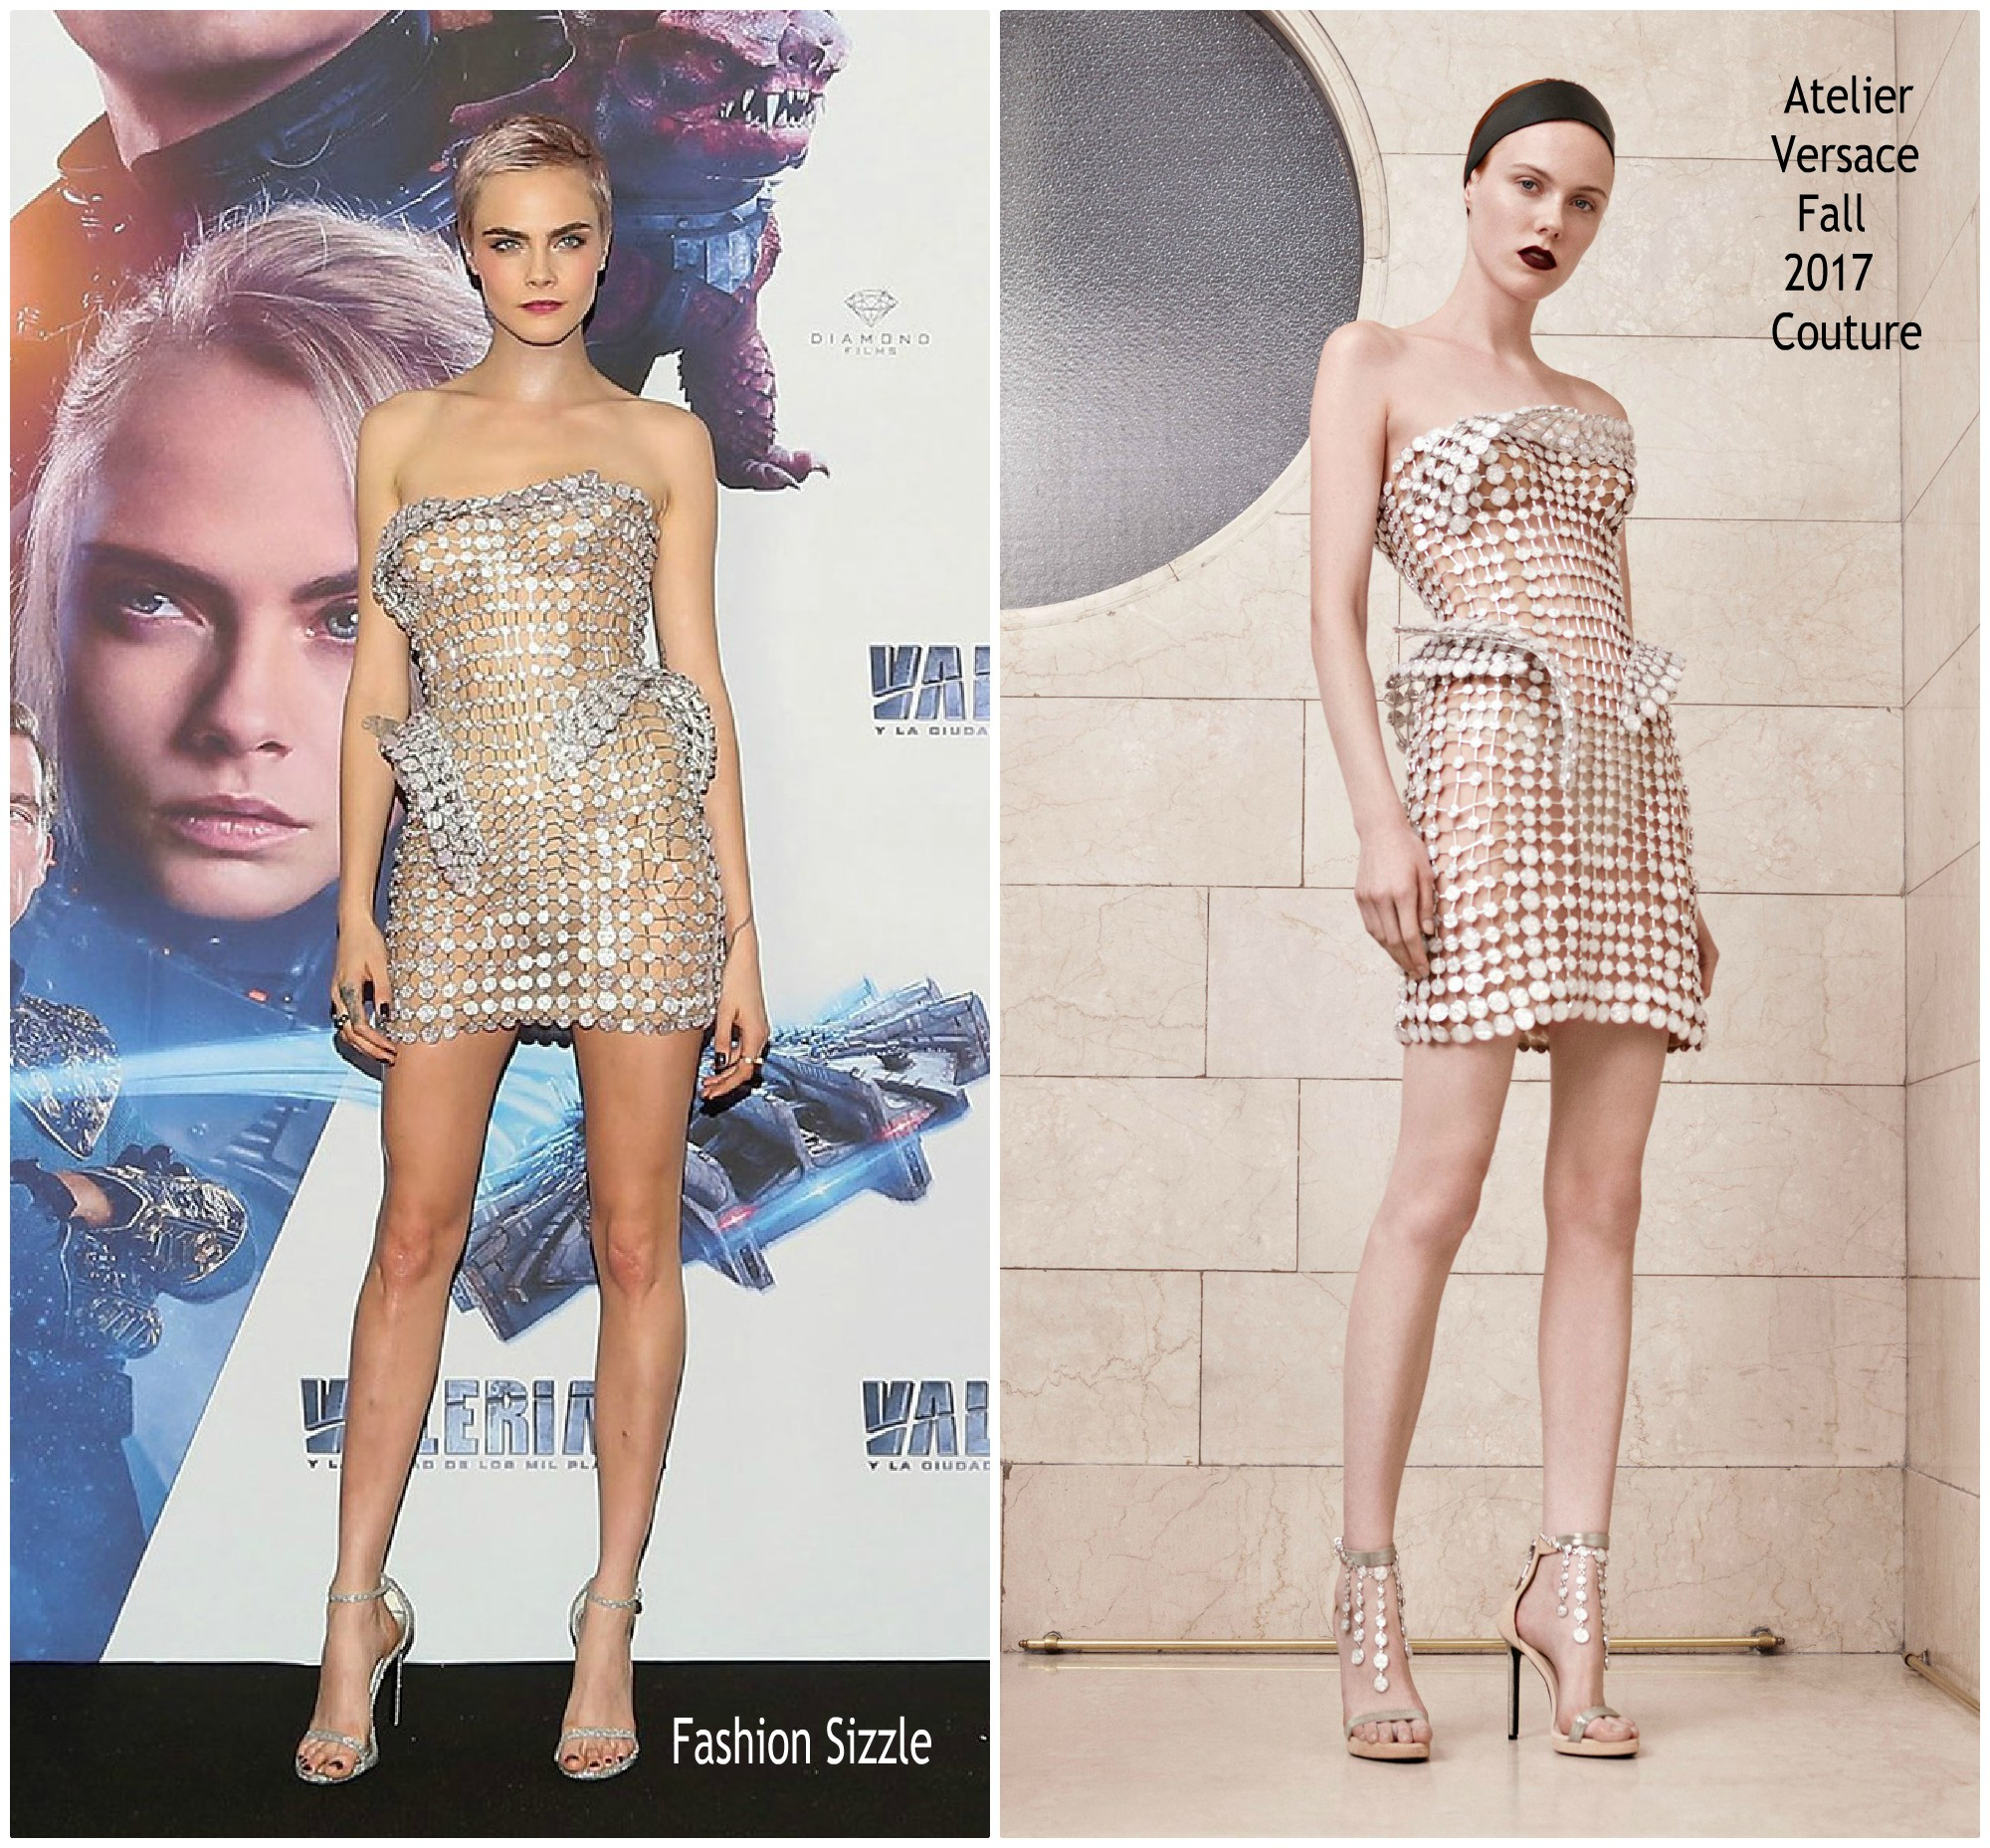 cara-delevingne-in-atelier-versace-valerian-and-the-city-of-a thousand-planets-mexico-premiere